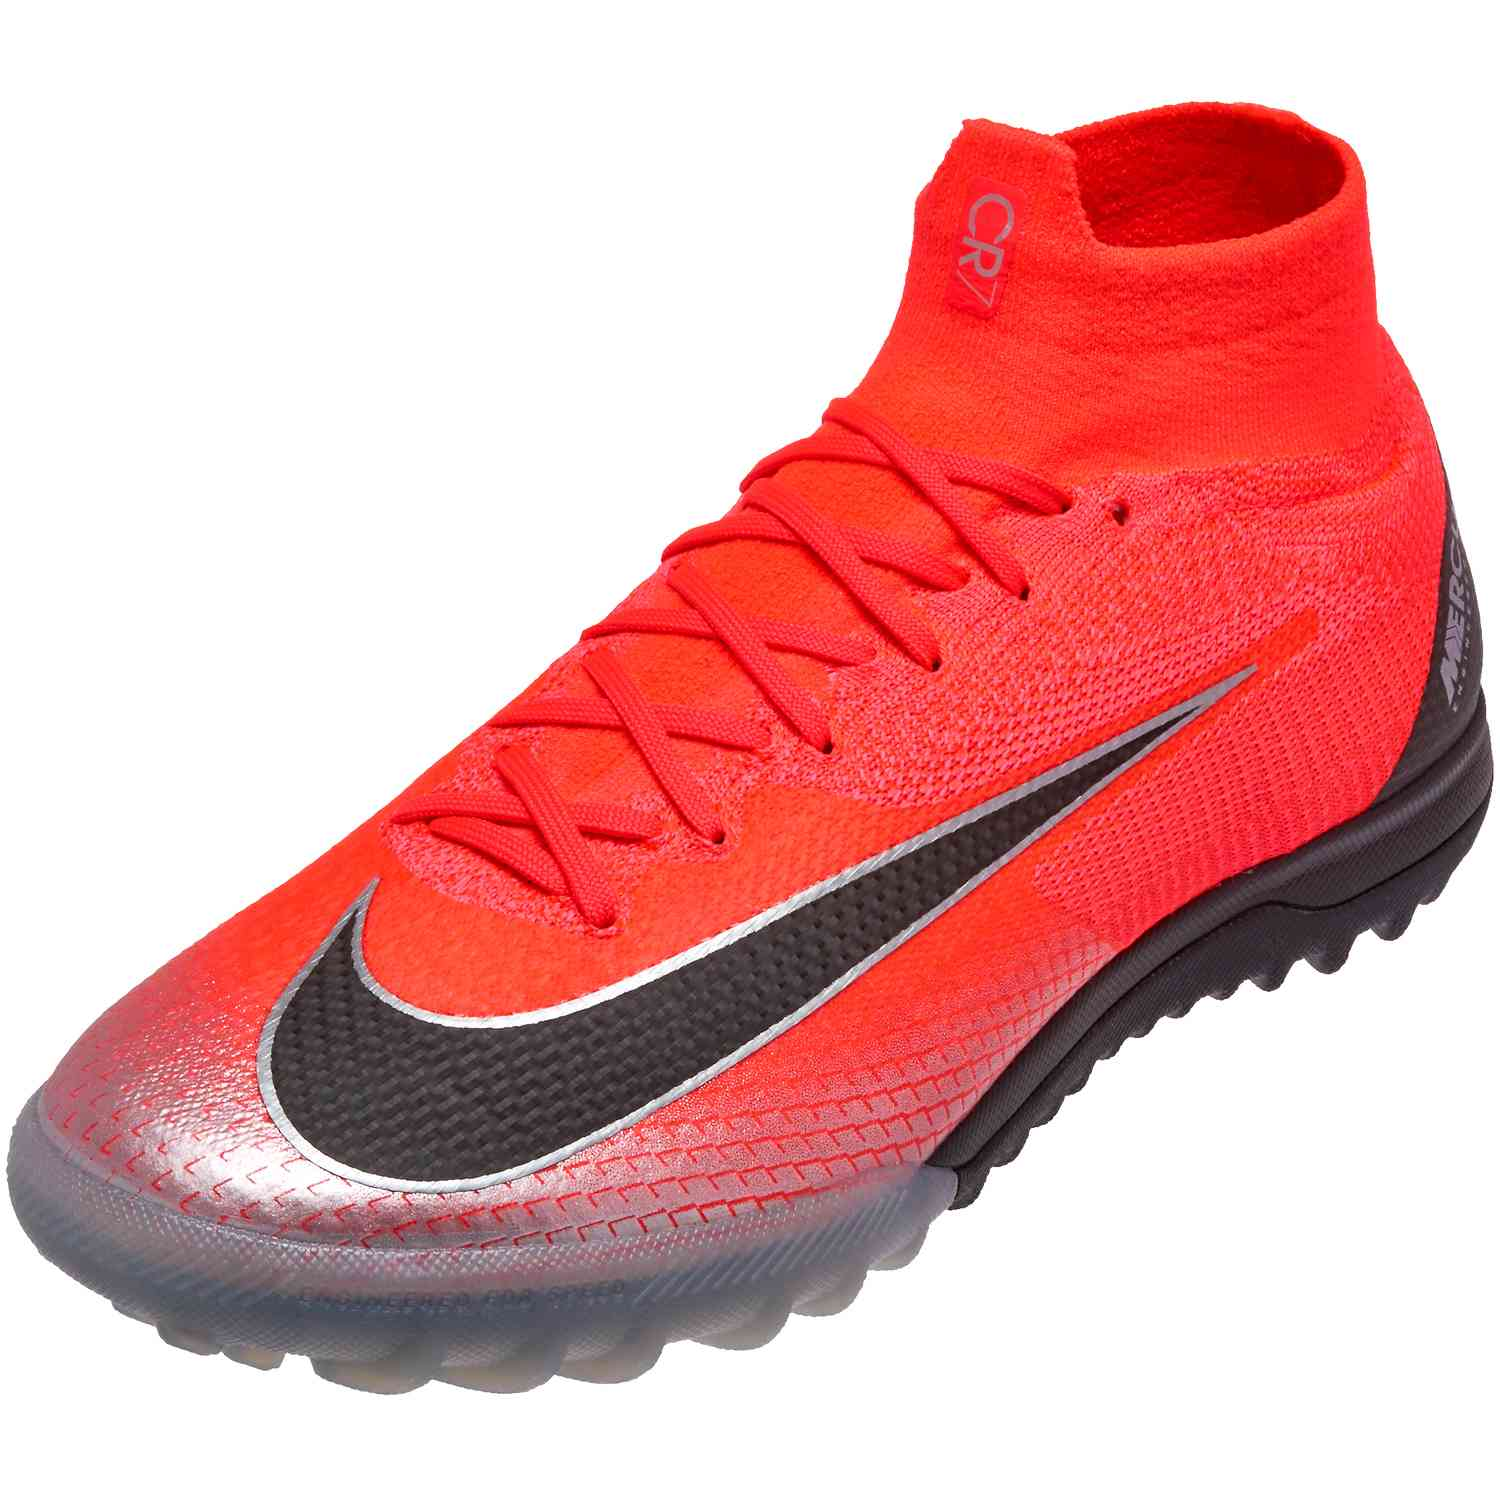 f3d713791a7 Nike Mercurial SuperflyX 6 Elite TF – CR7 – Flash Crimson Black Chrome Dark  Grey